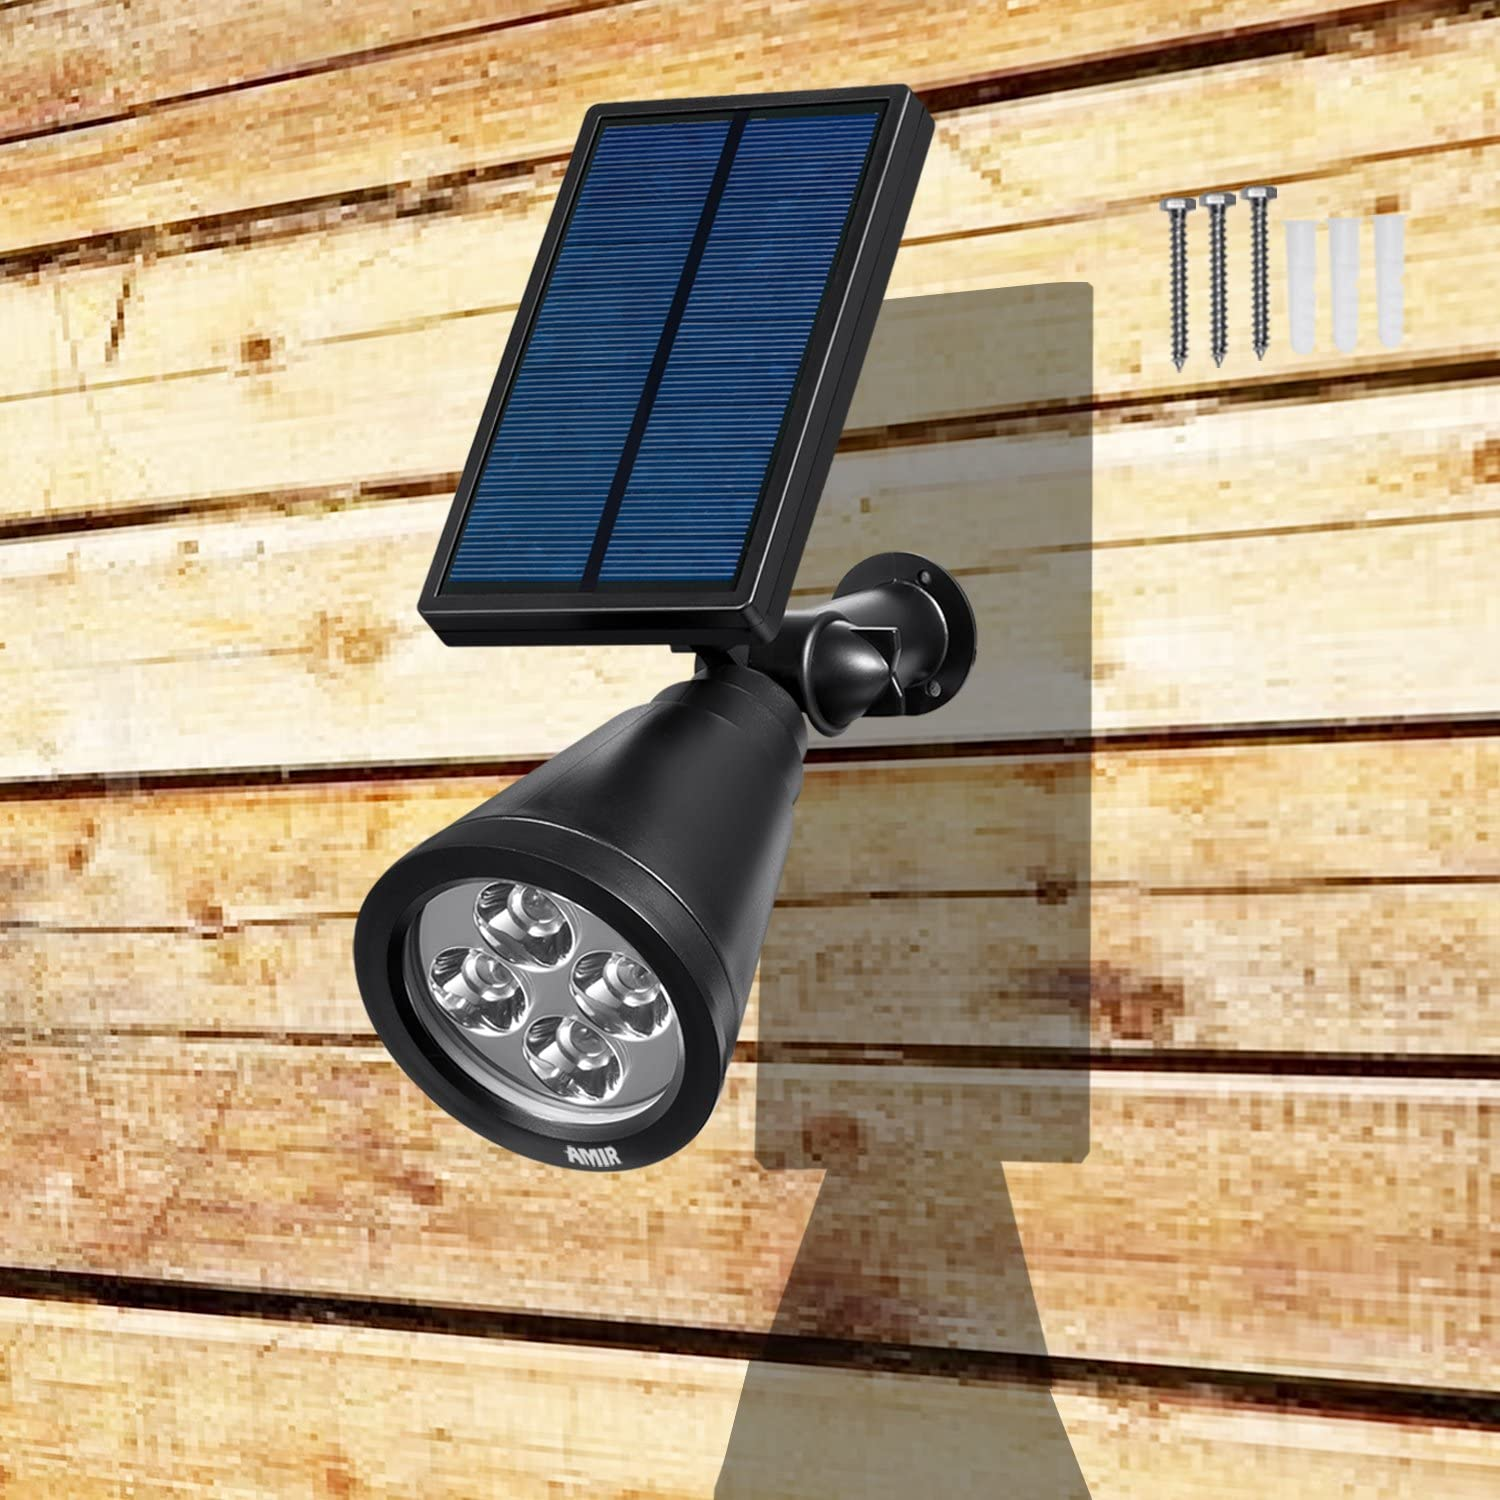 Waterproof 4 LED Solar Security Landscape Lights Adjustable Solar Garden Light with Auto On// Off for Yard Driveway Pathway Pool Patio AMIR Solar Spotlights Outdoor Upgraded Green